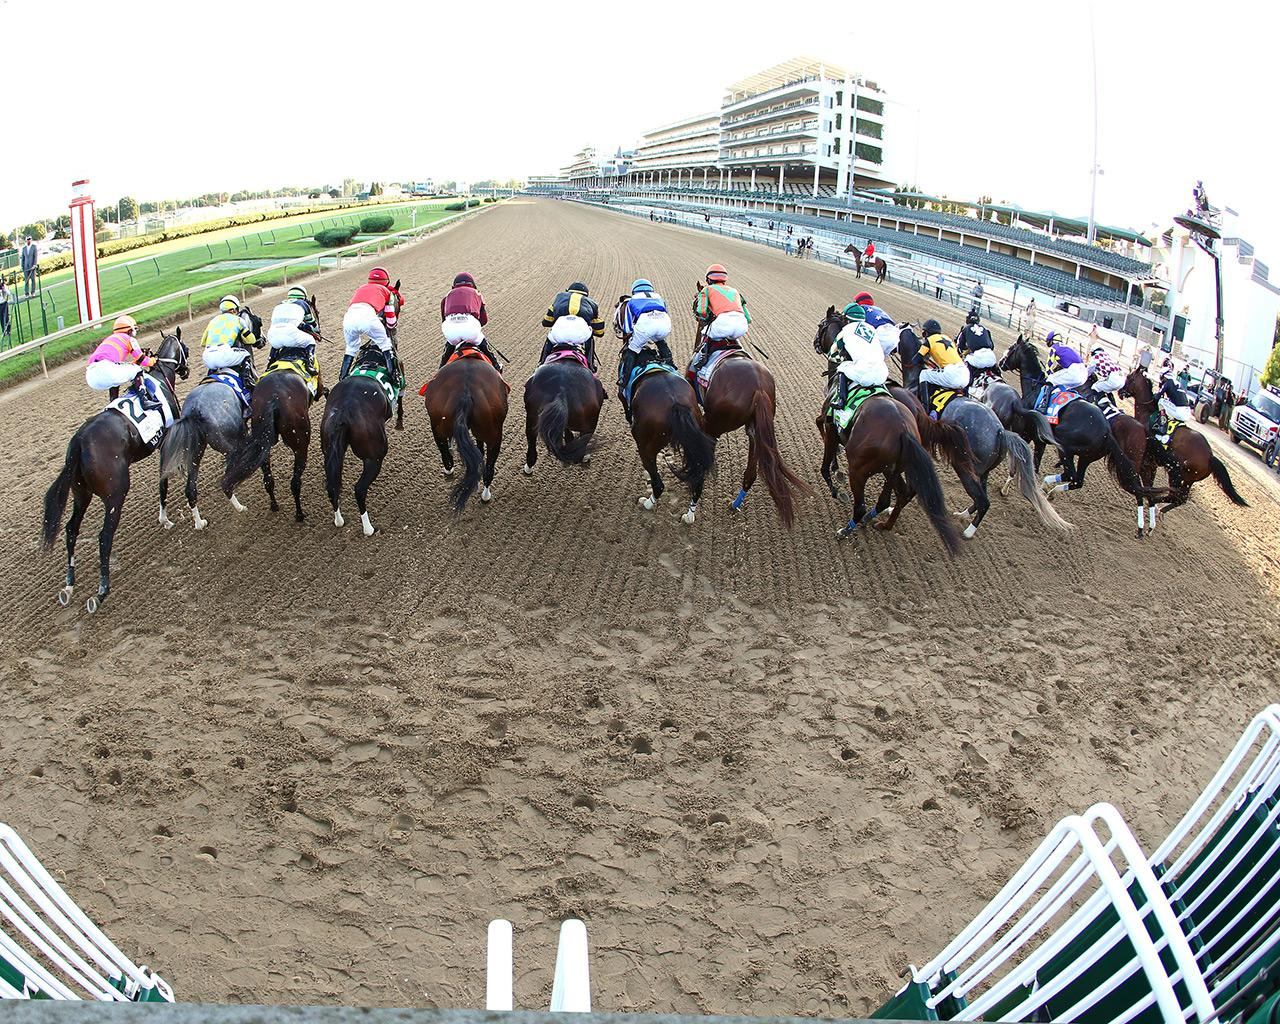 AUTHENTIC---The-Kentucky-Derby---146th-Running---09-05-20---R14---CD---Gate-Start-01